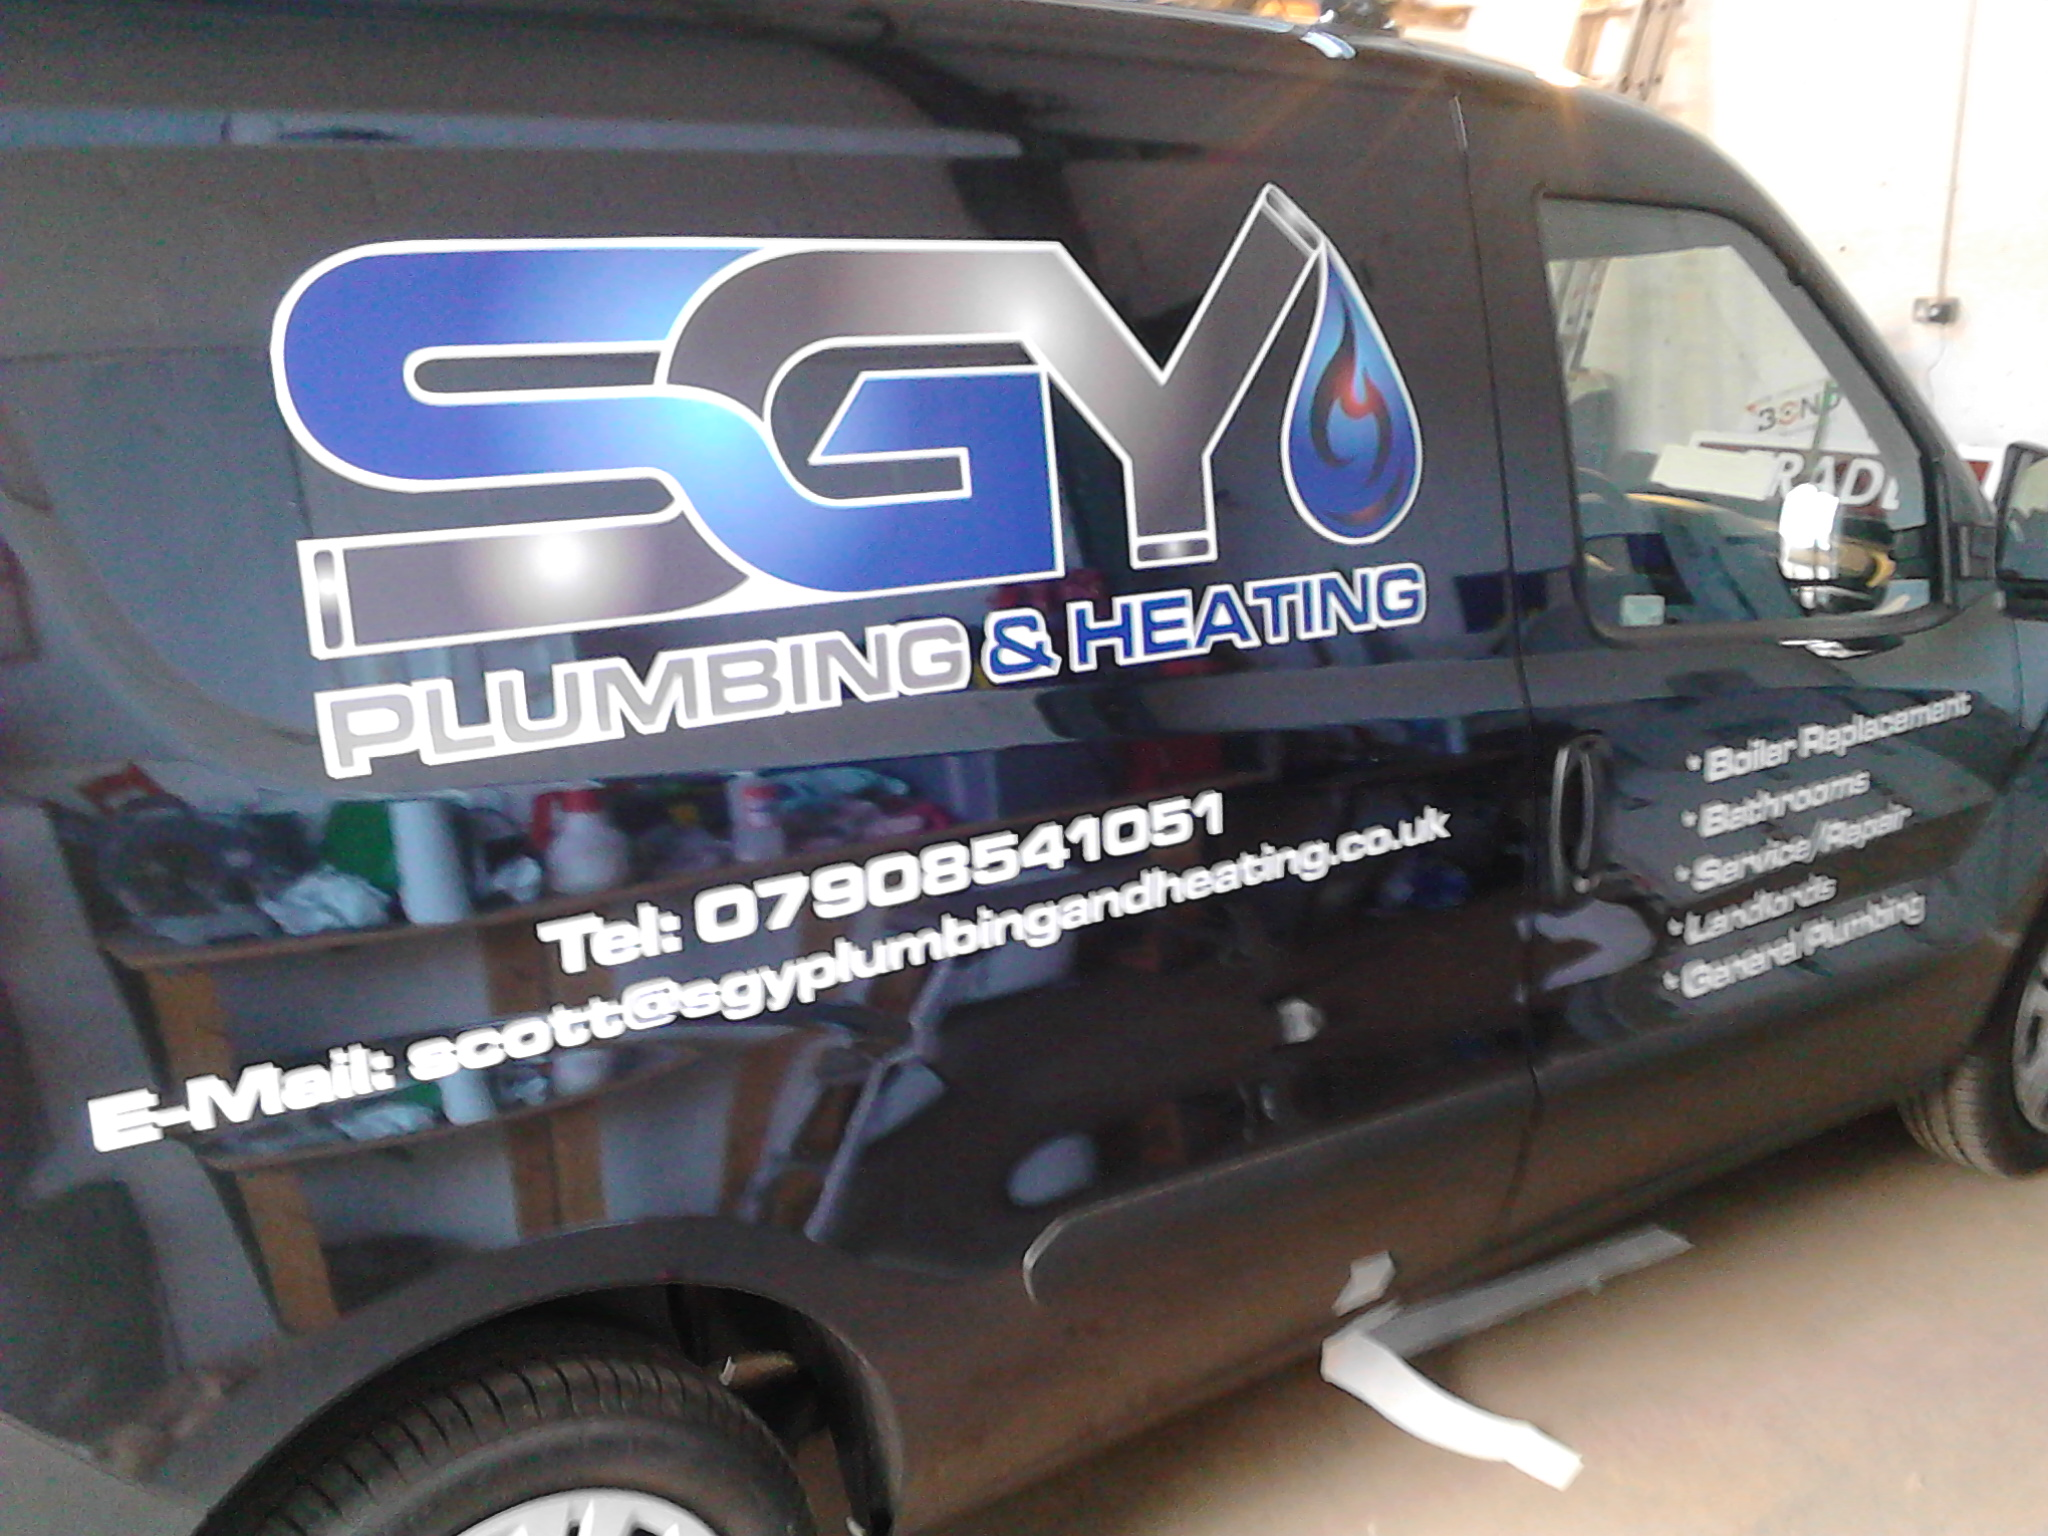 sgy plumbing services